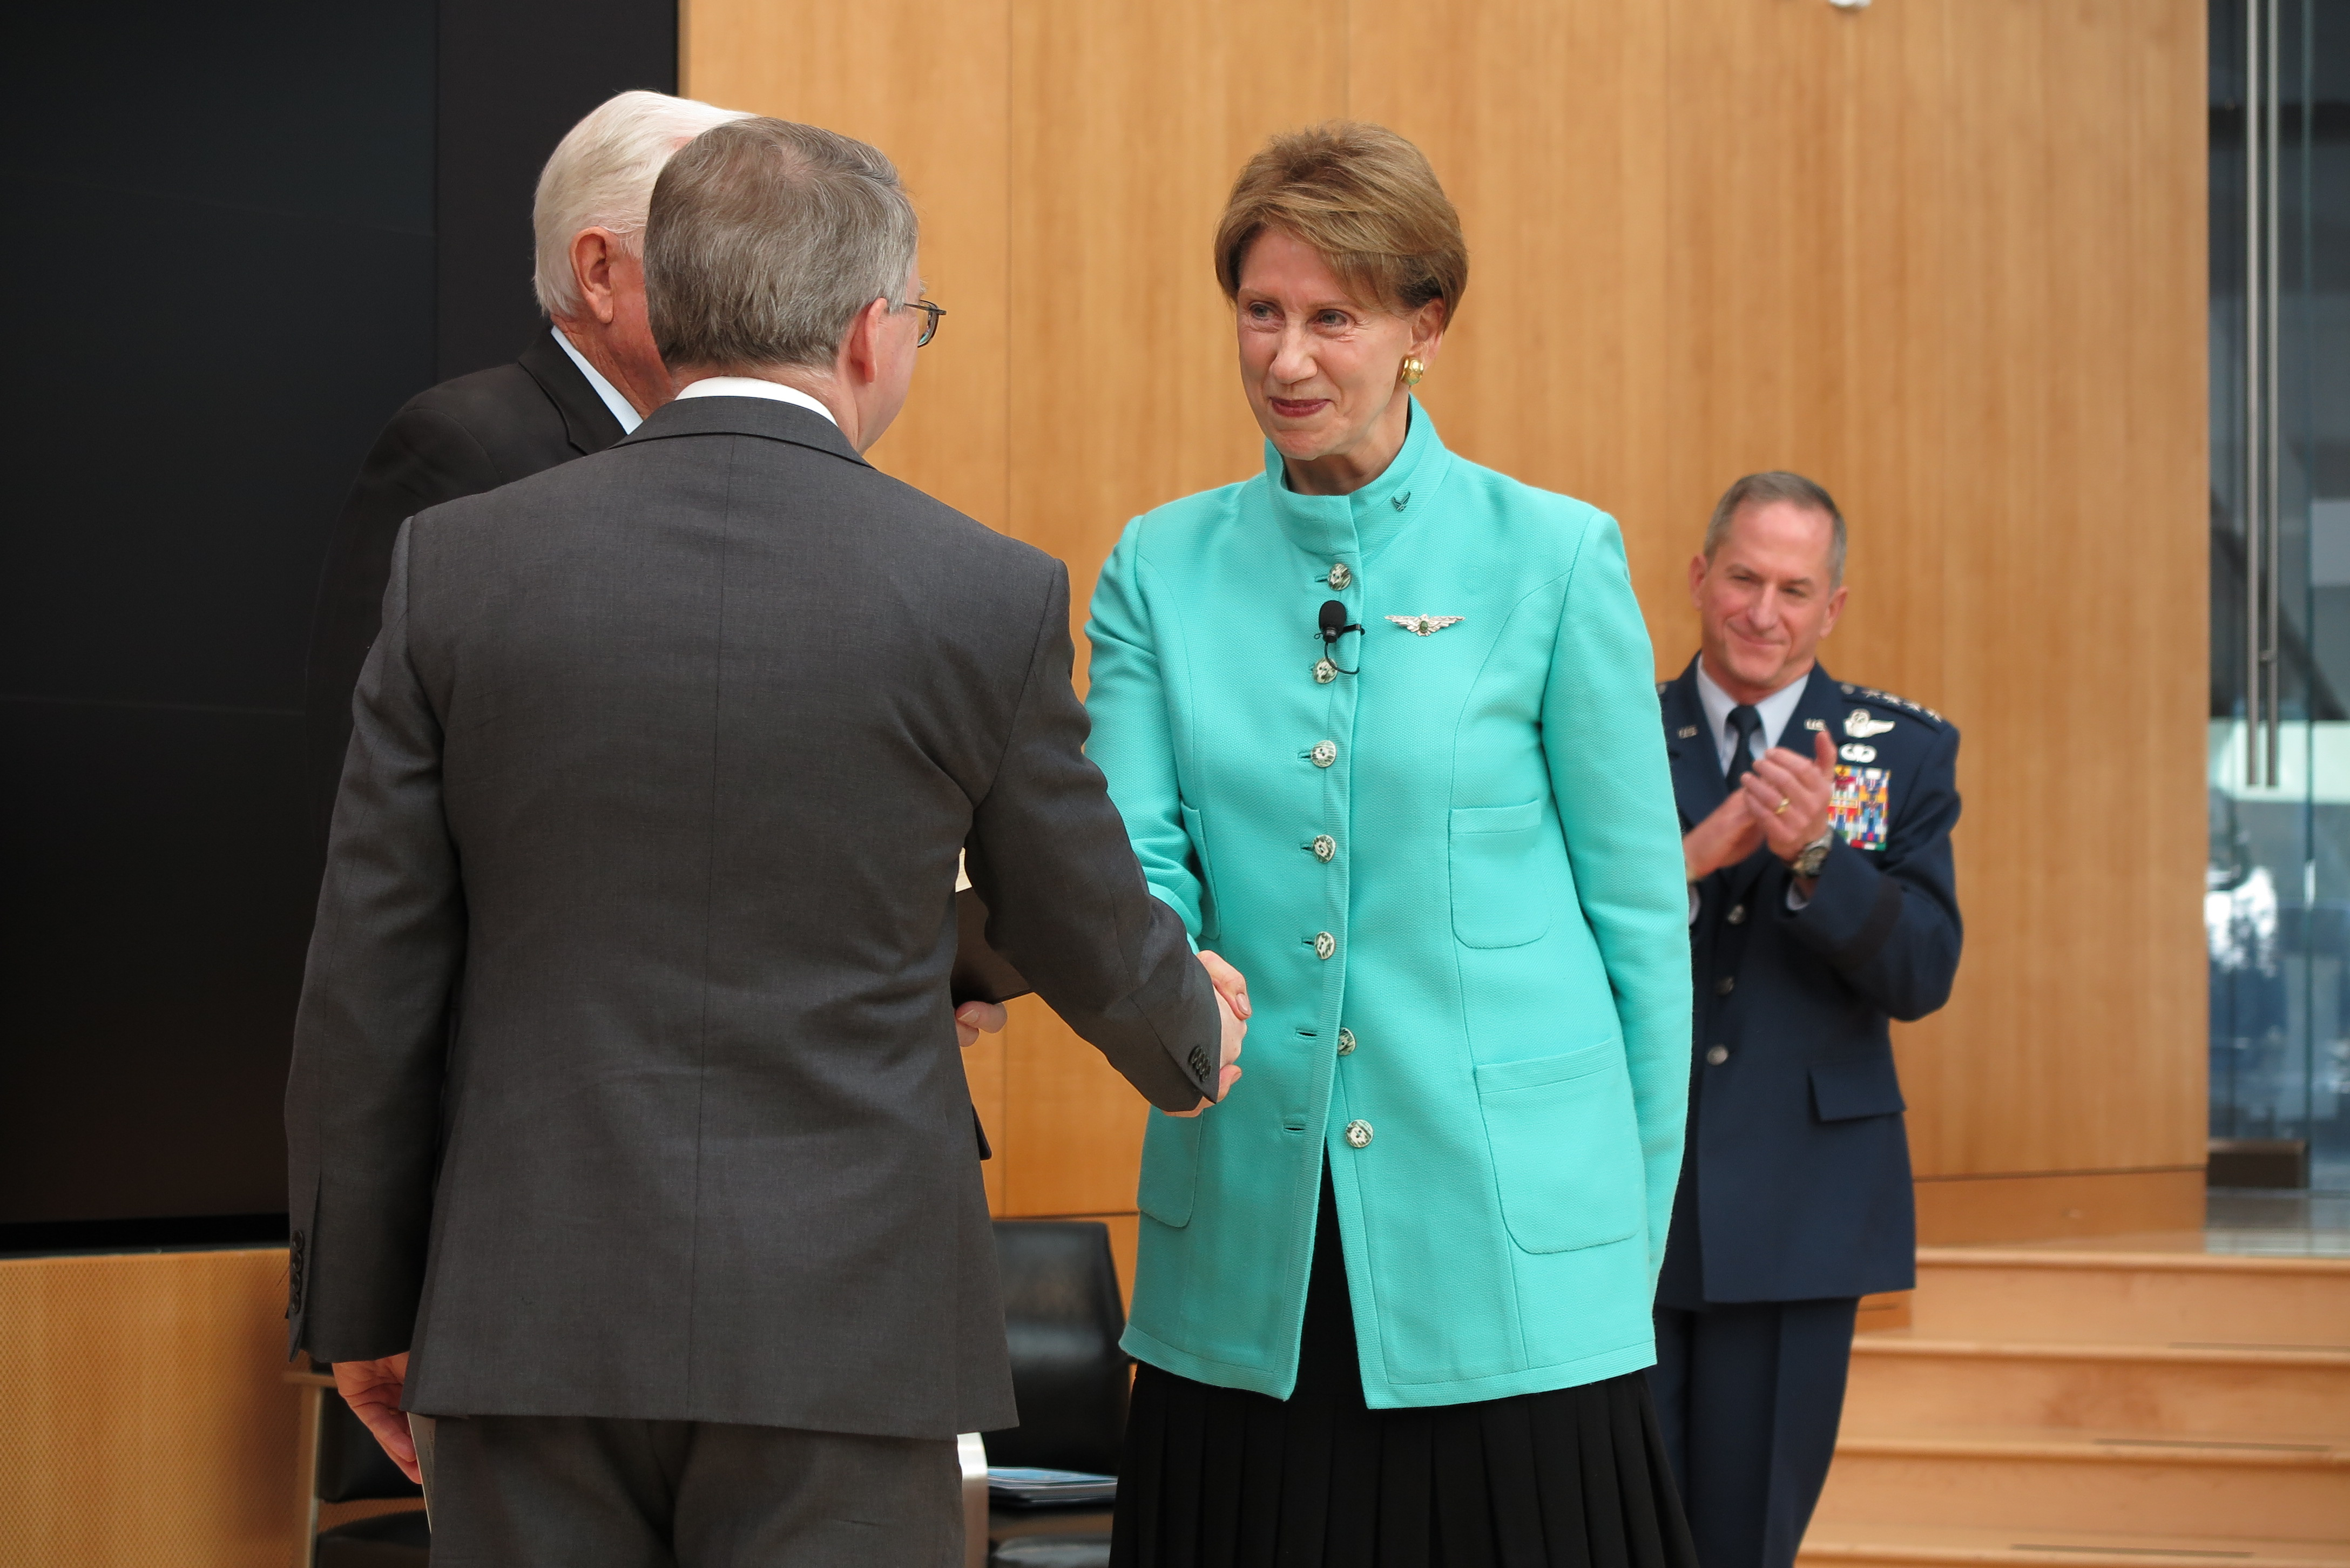 Air Force Secretary Barbara Barrett shakes hands with Deputy Secretary of Defense, David Norquist, after being sworn-in at the US Air Force Academy on November 2nd, 2019.